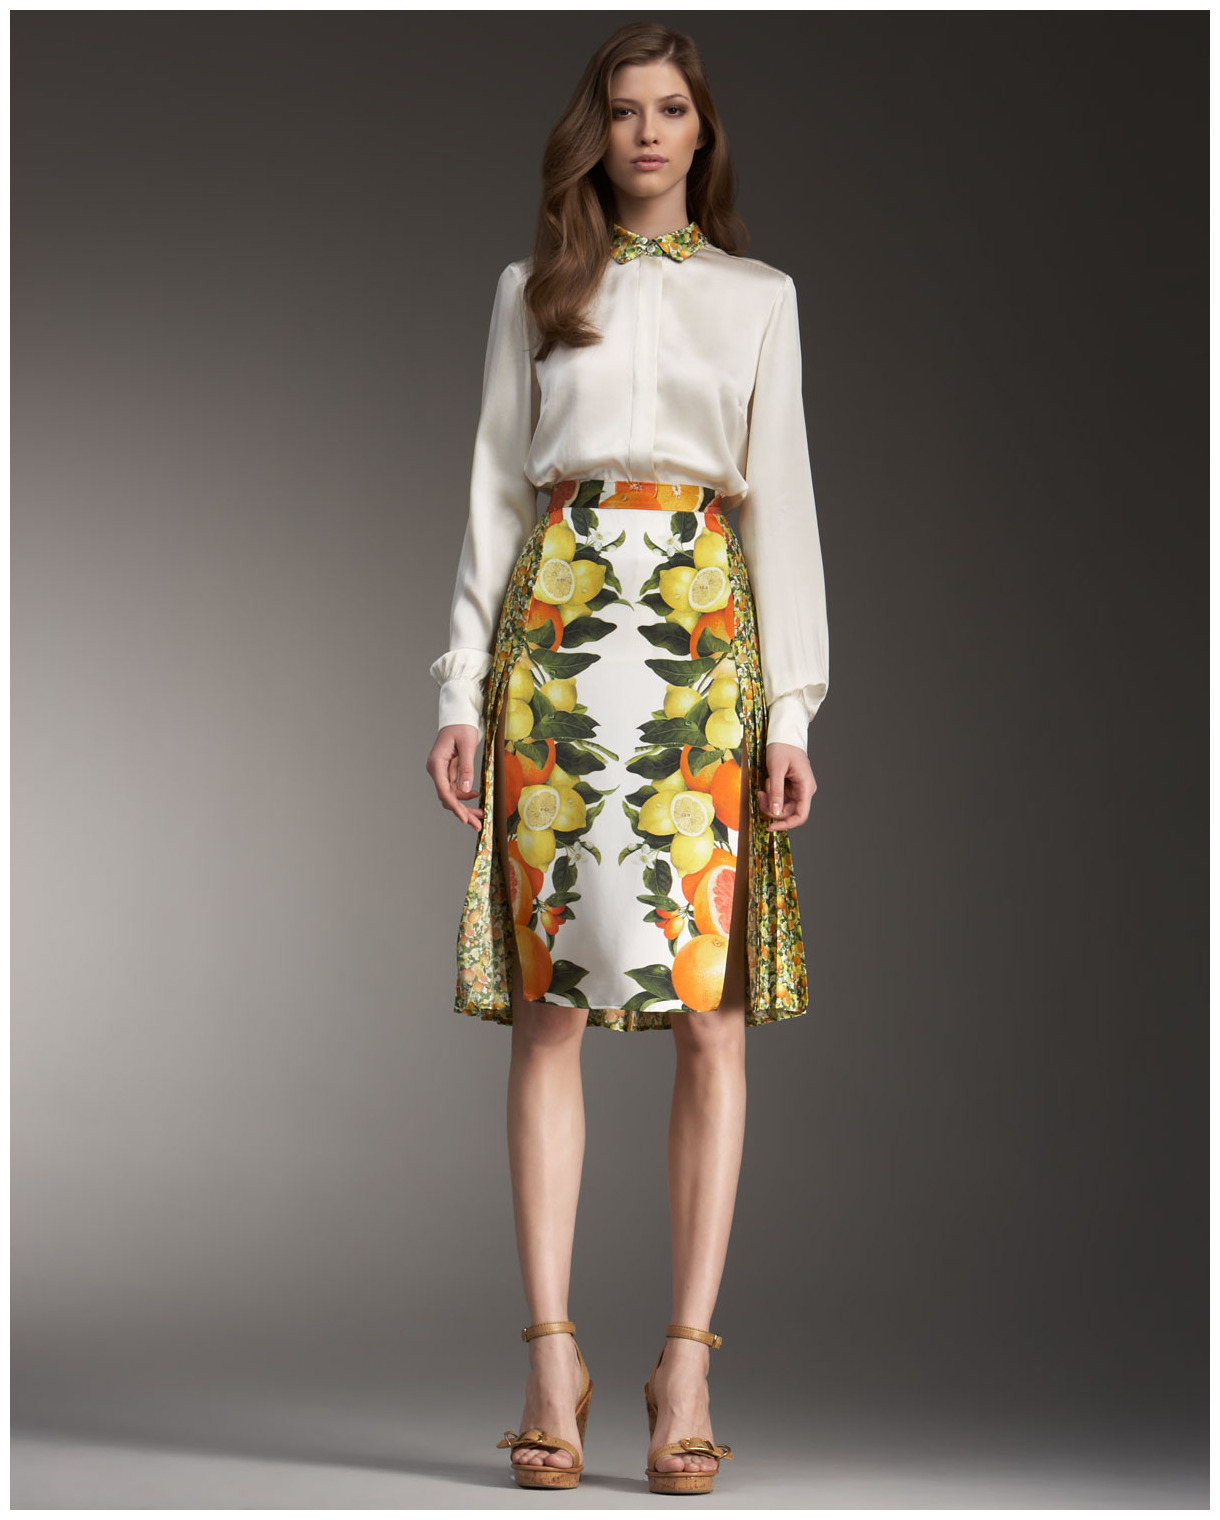 http://2.bp.blogspot.com/-XXRvWkza_gY/TWl-9_wfwiI/AAAAAAAADek/xdQh8IaJAgM/s1600/stella-mccartney-orange-mixed-print-skirt-product-1-220802-770731550_full.jpg